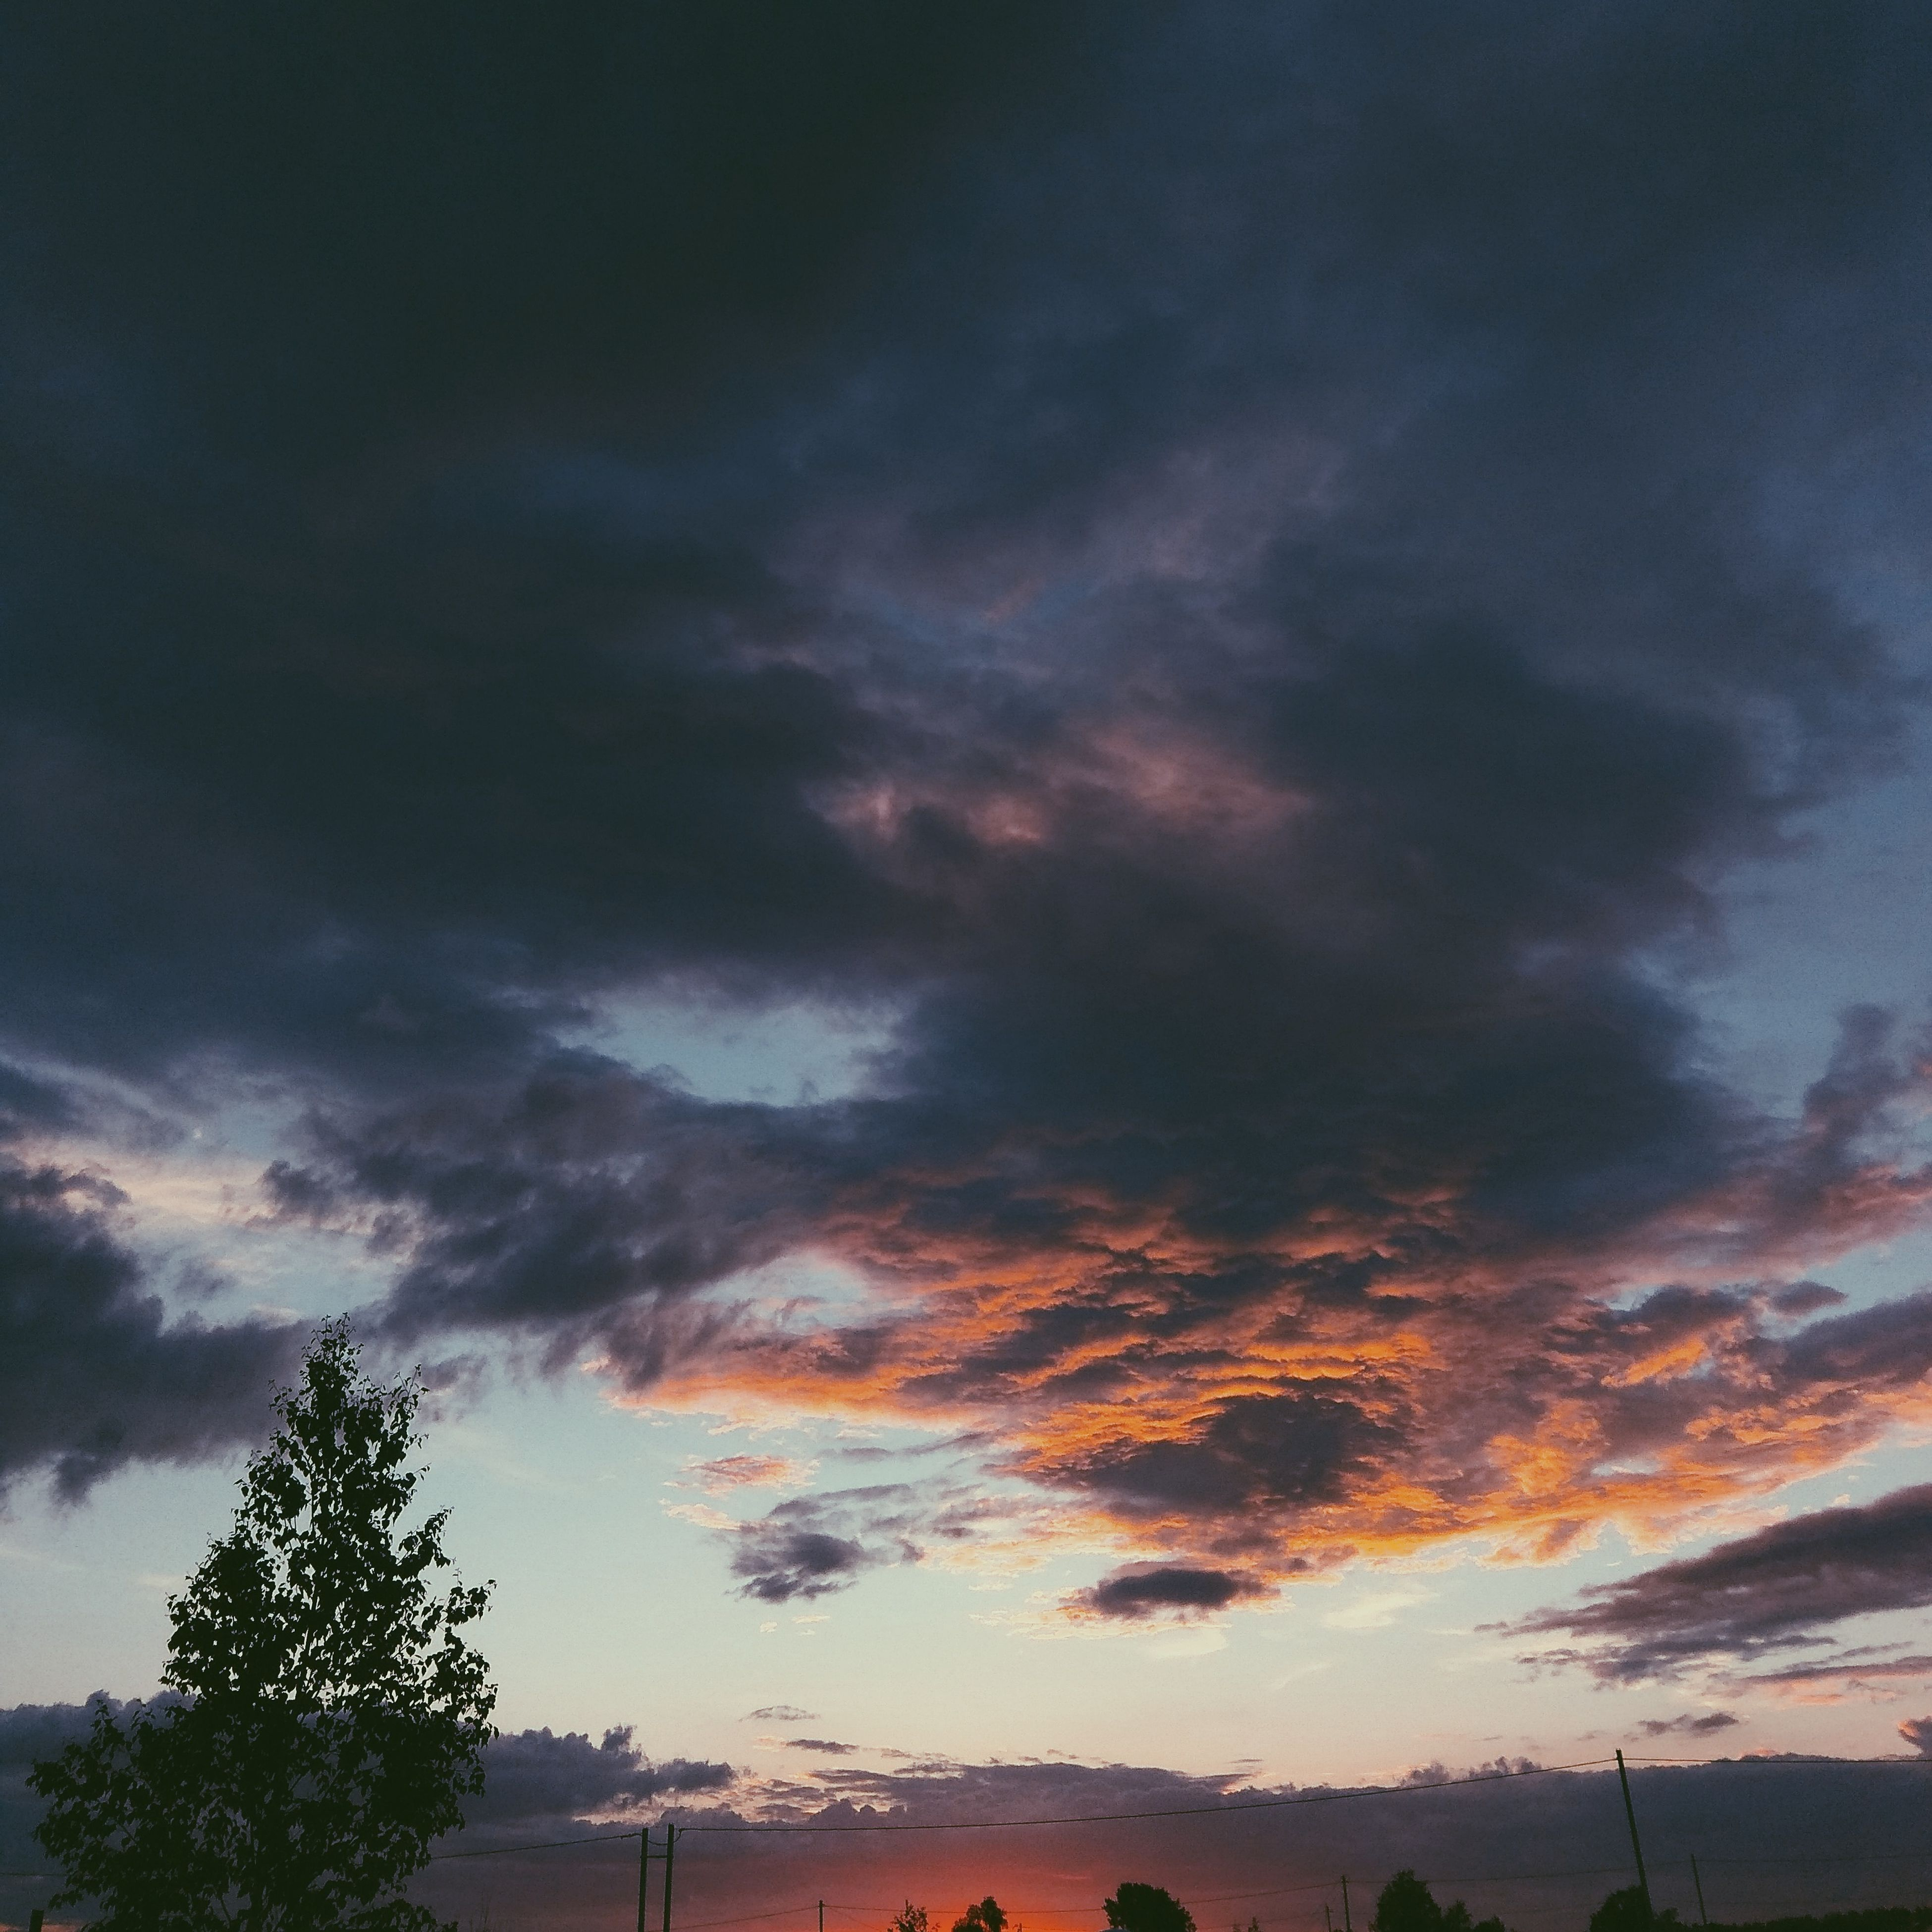 sunset, cloud - sky, dramatic sky, sky, beauty in nature, nature, tree, scenics, orange color, low angle view, no people, tranquil scene, tranquility, silhouette, weather, outdoors, storm cloud, day